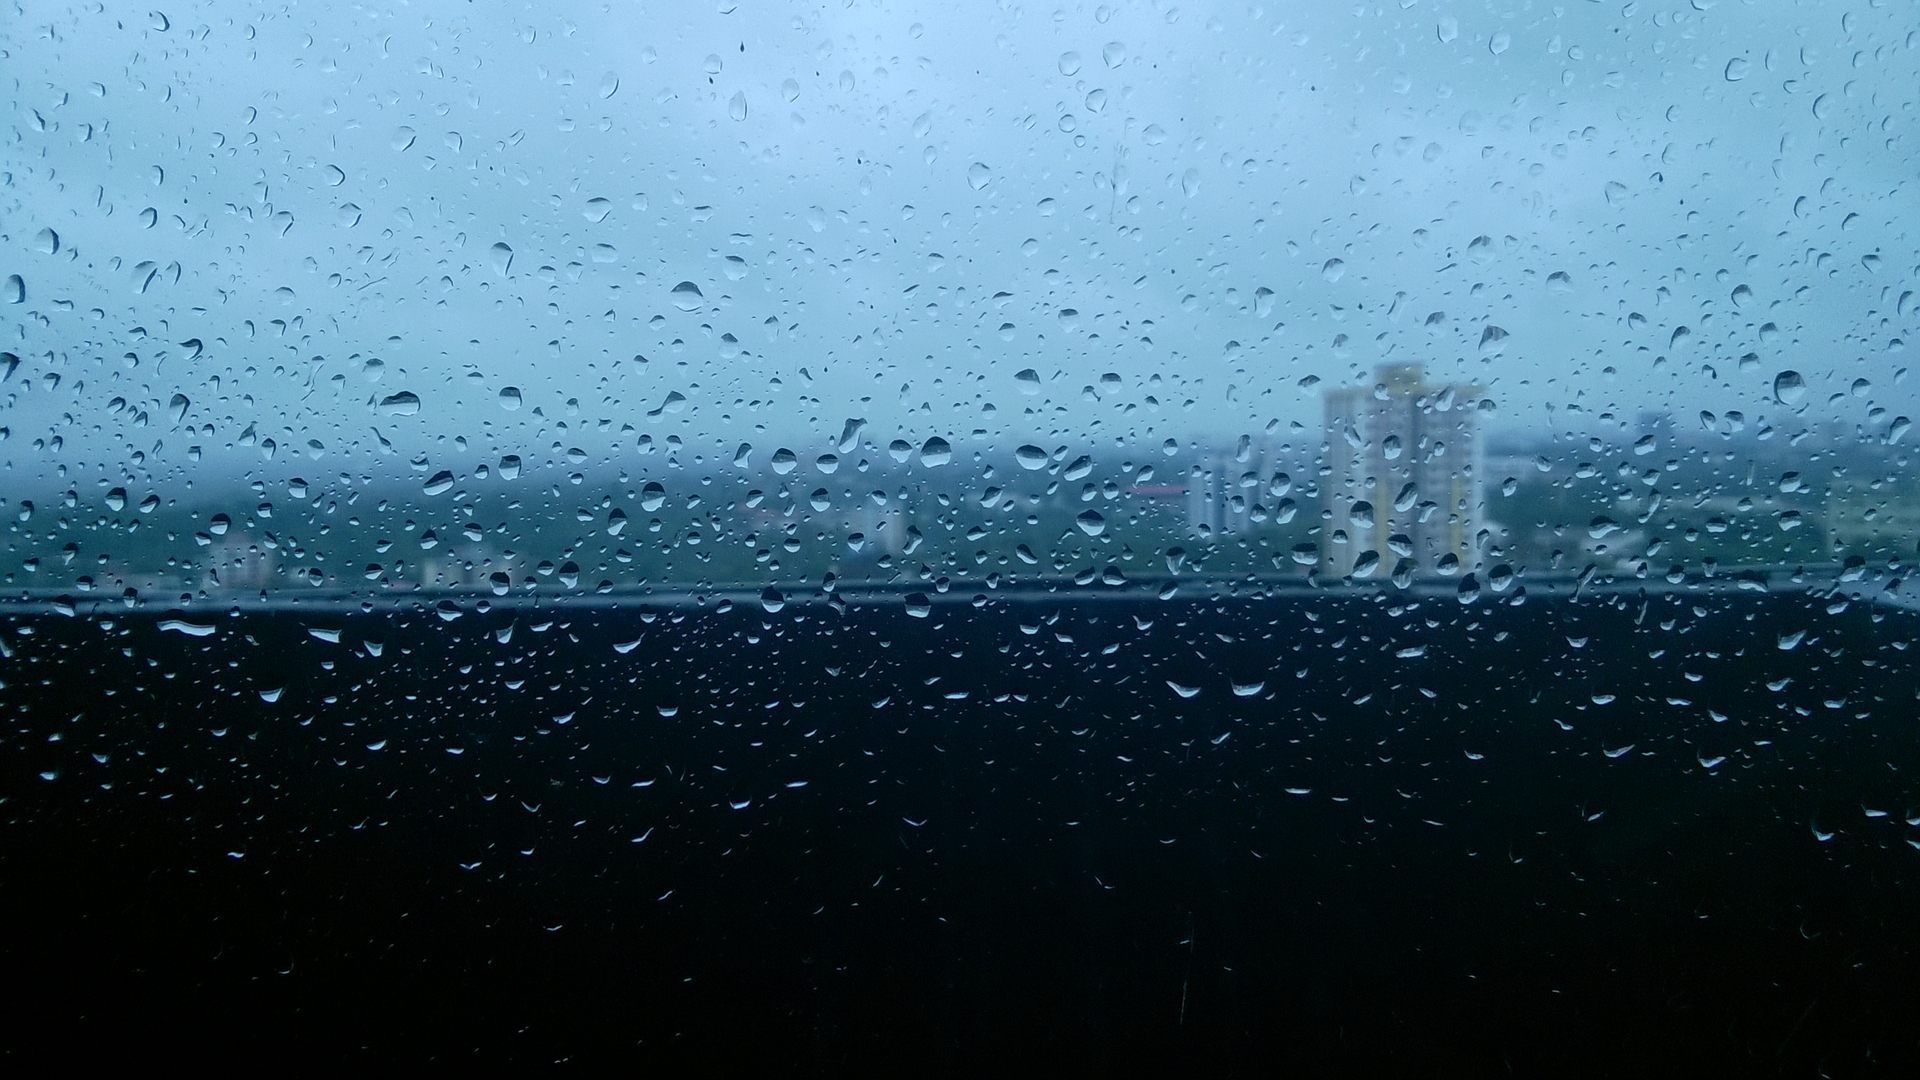 This photo taken from my office building